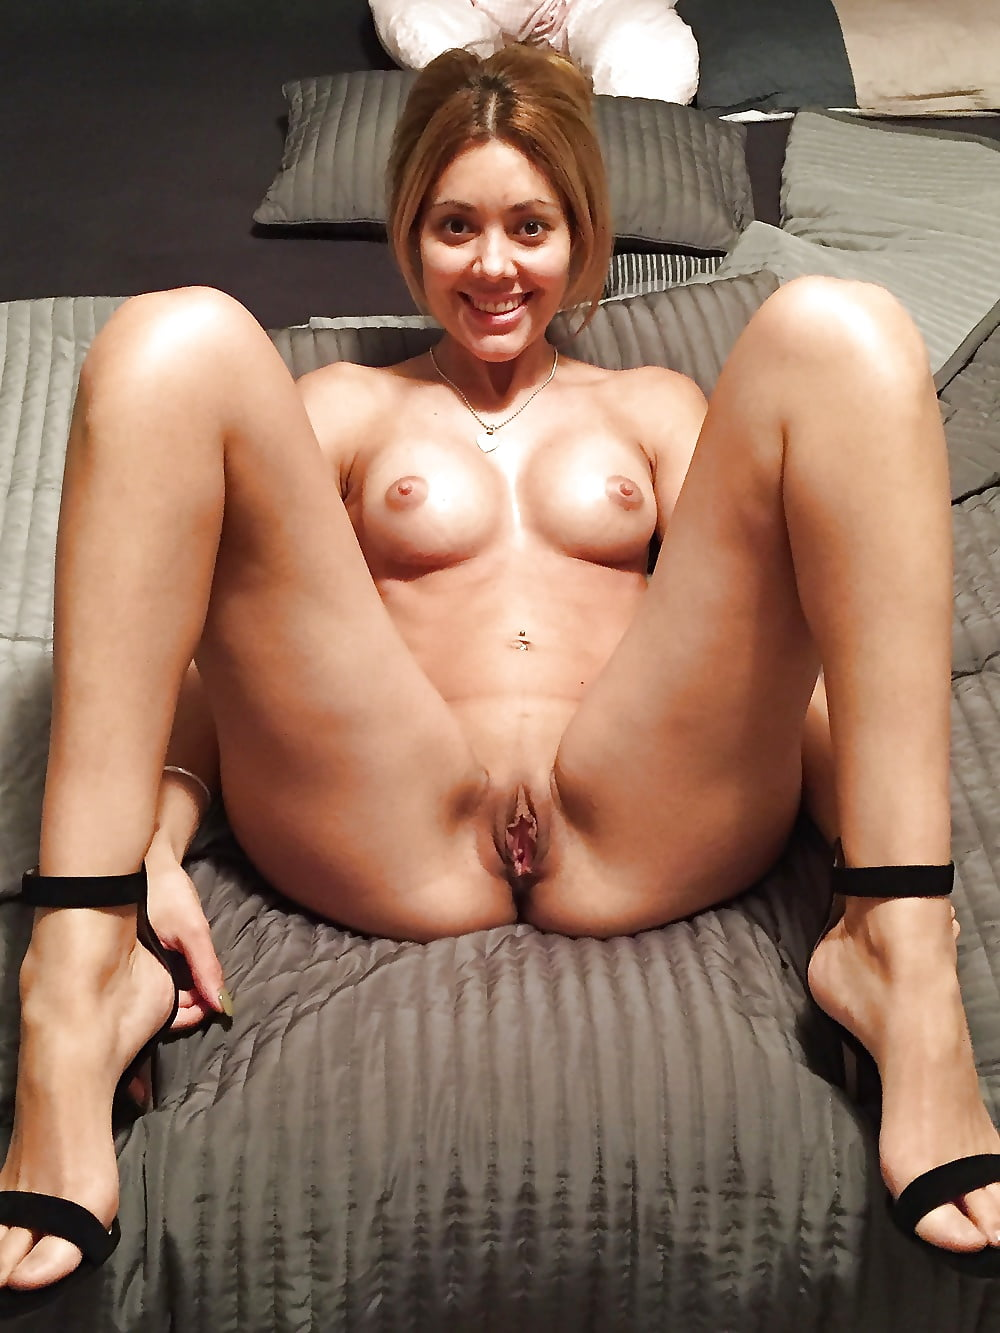 mom-next-door-shows-pussy